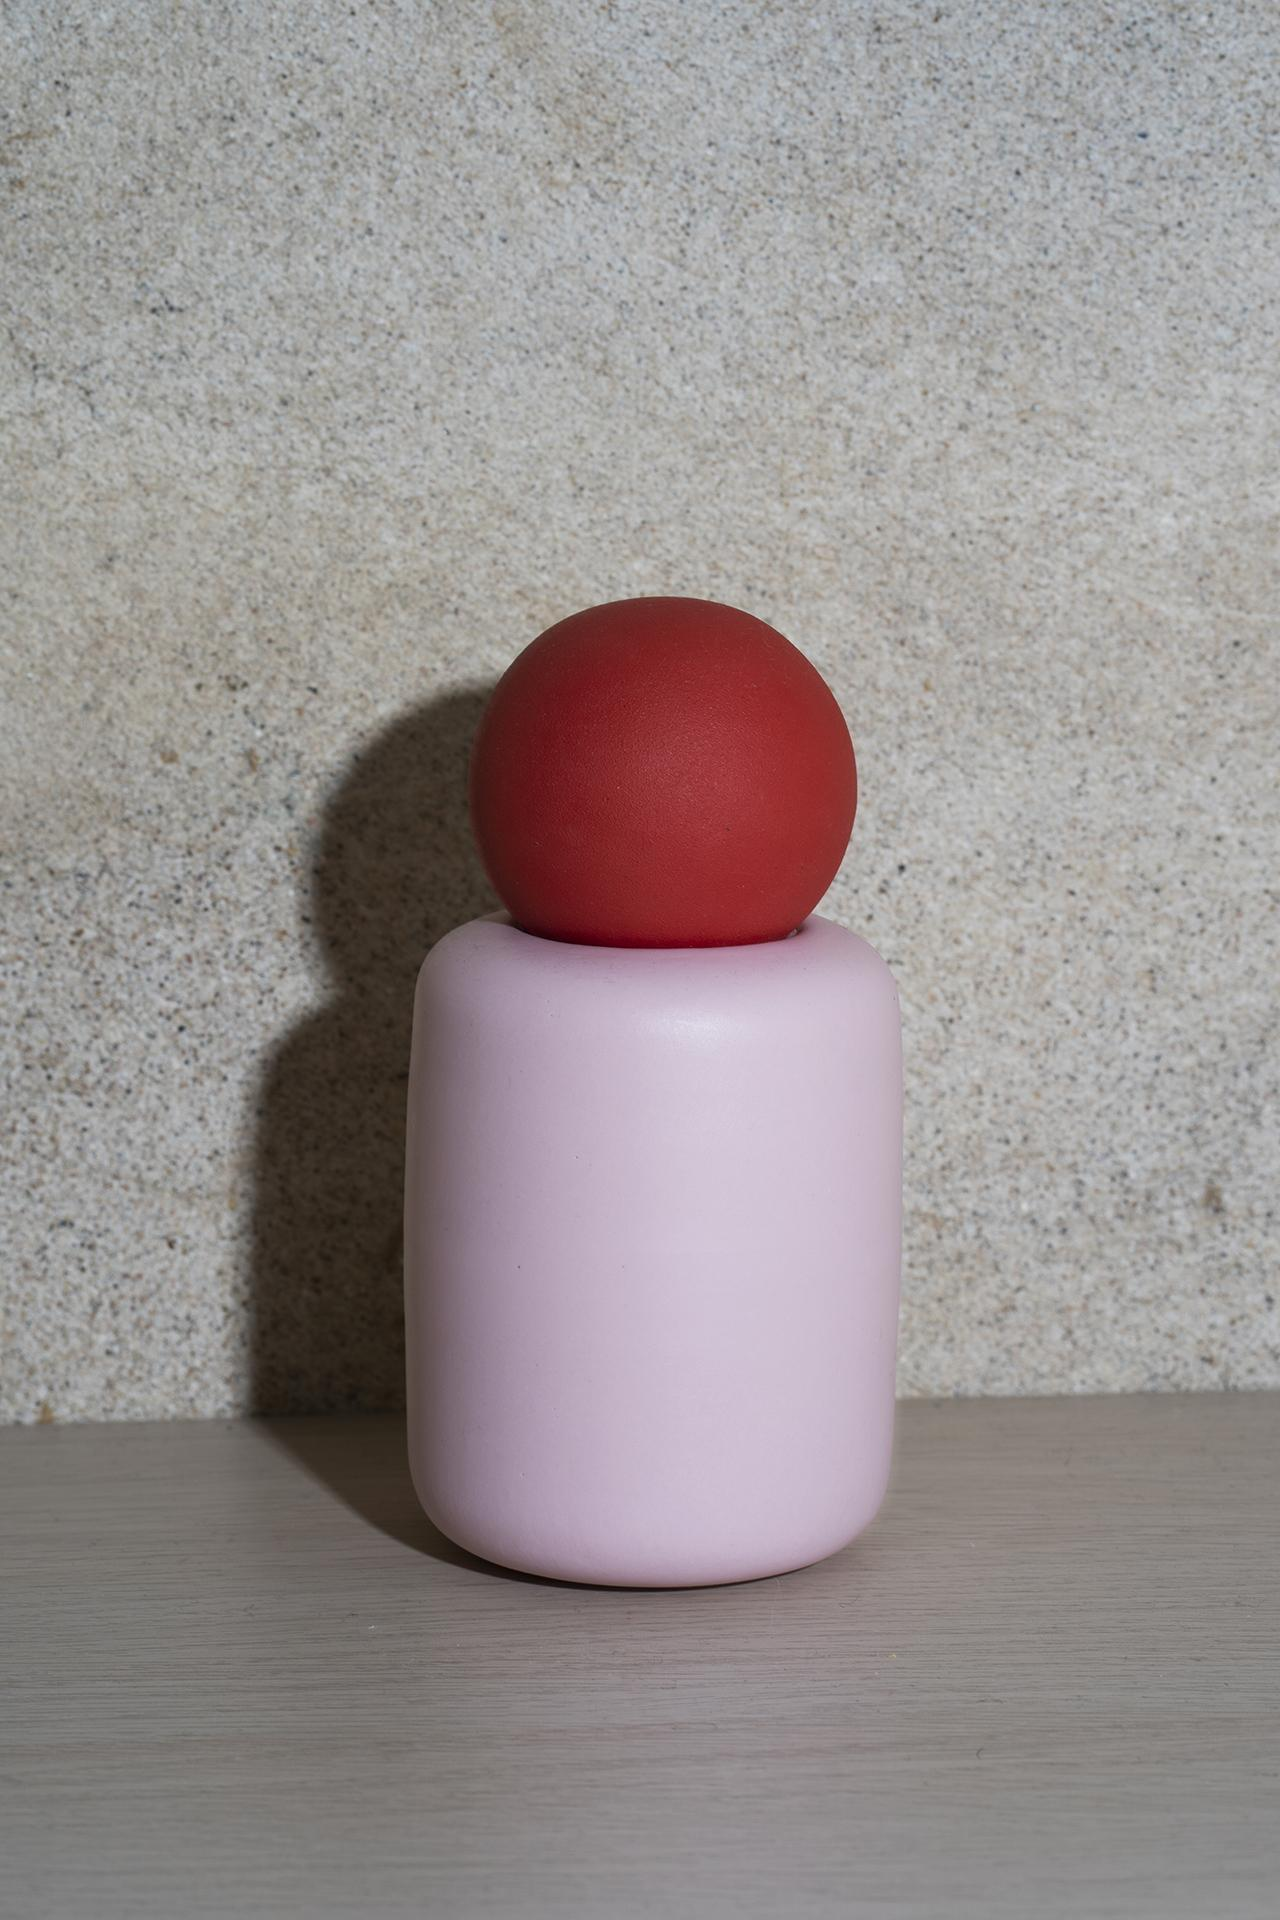 pink vase with red sphere on top